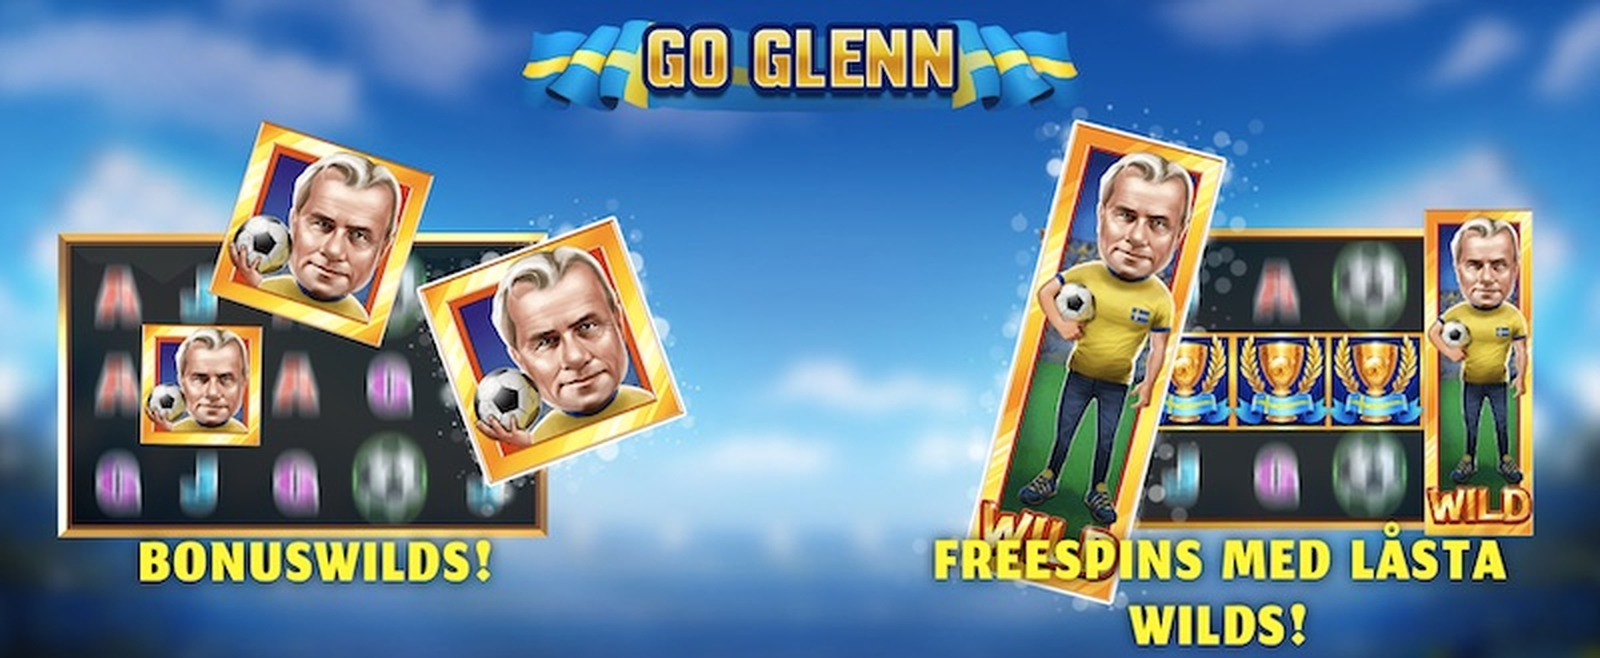 The Go Glenn Online Slot Demo Game by Relax Gaming